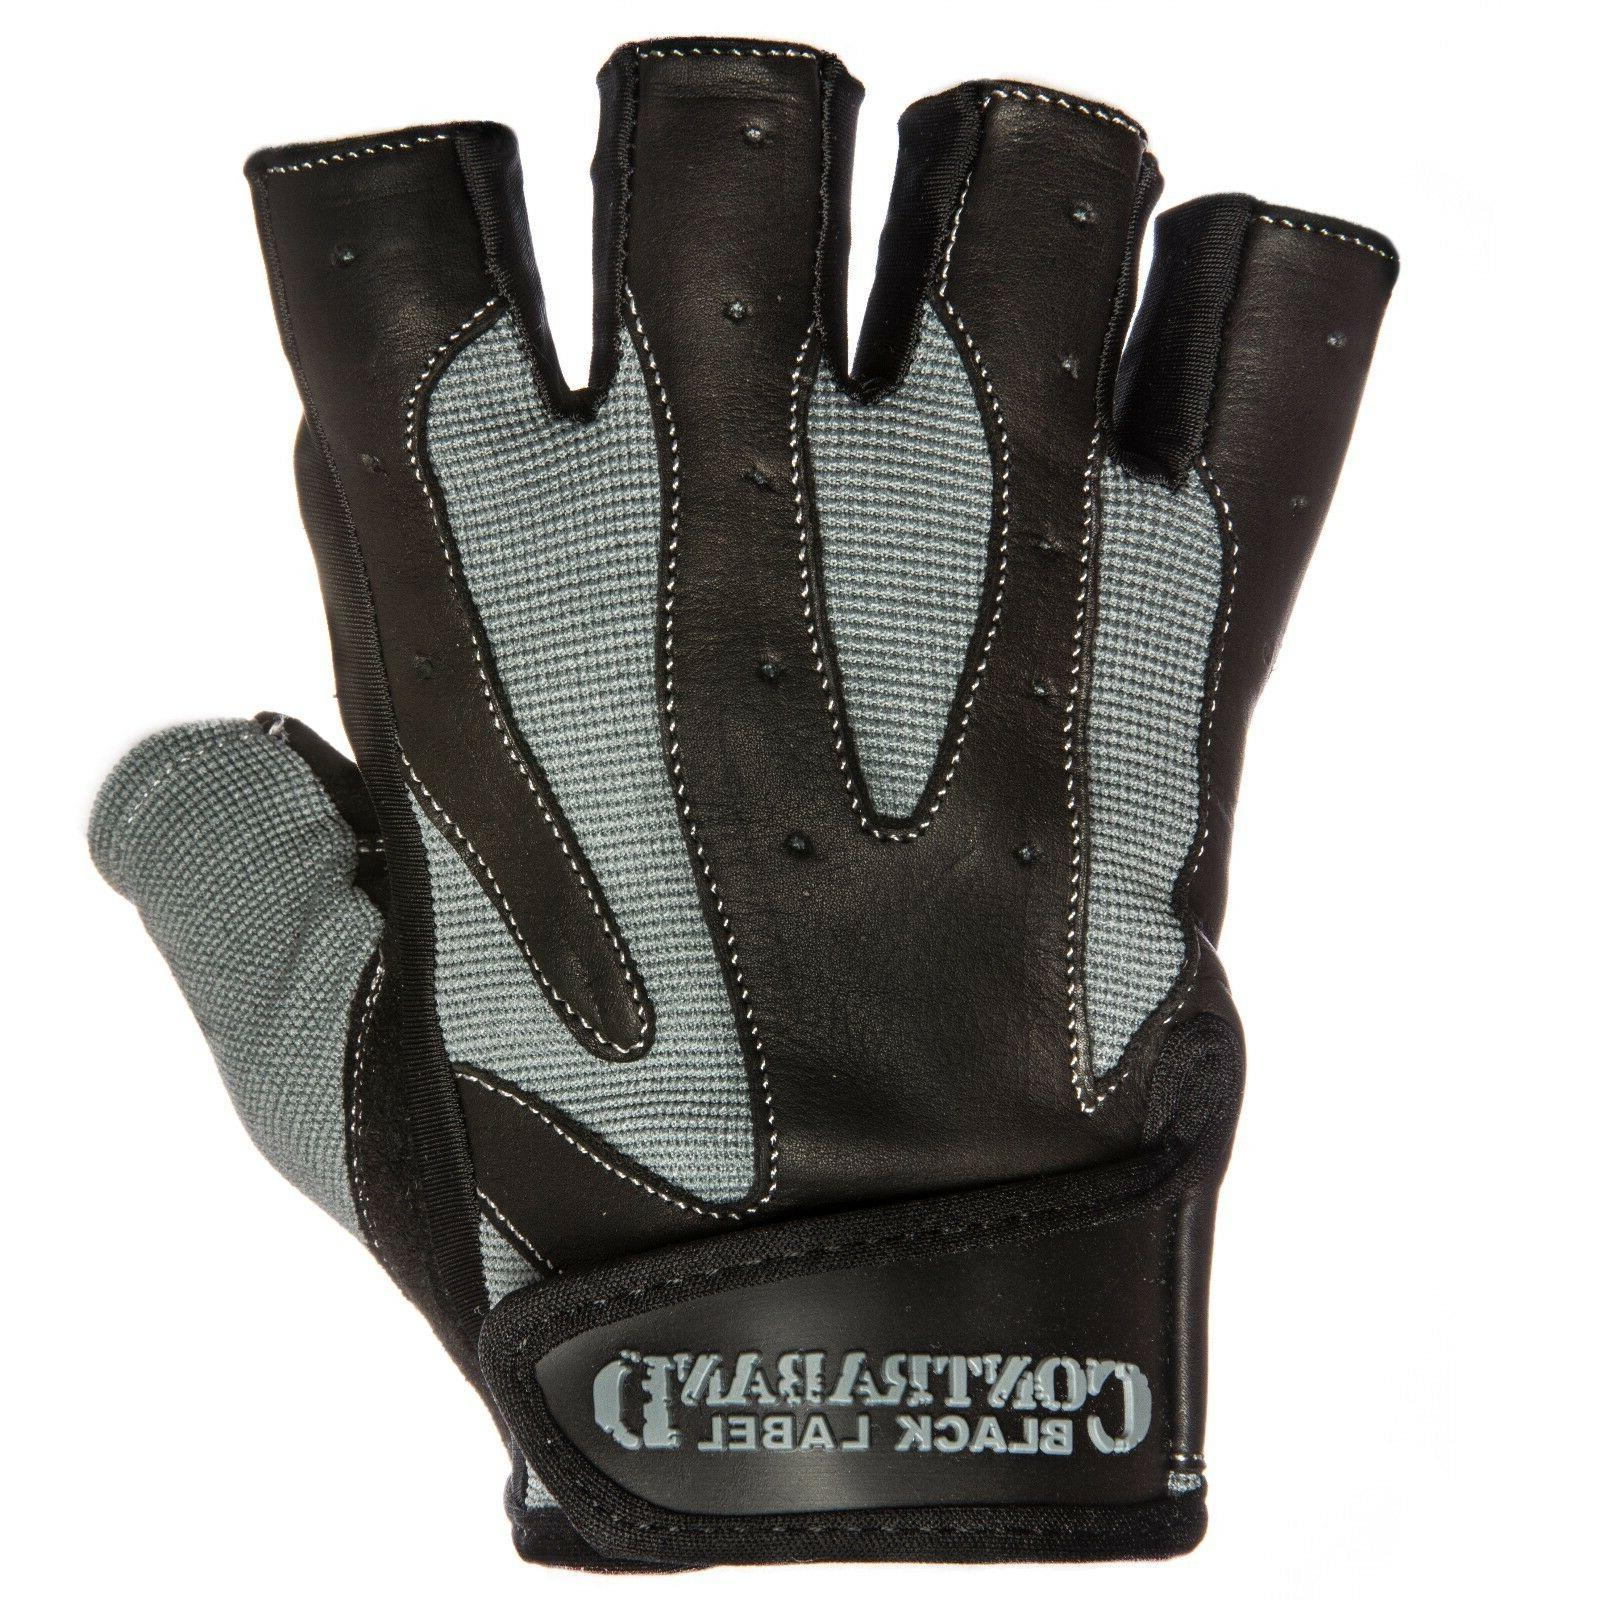 Contraband Pro Leather Gloves